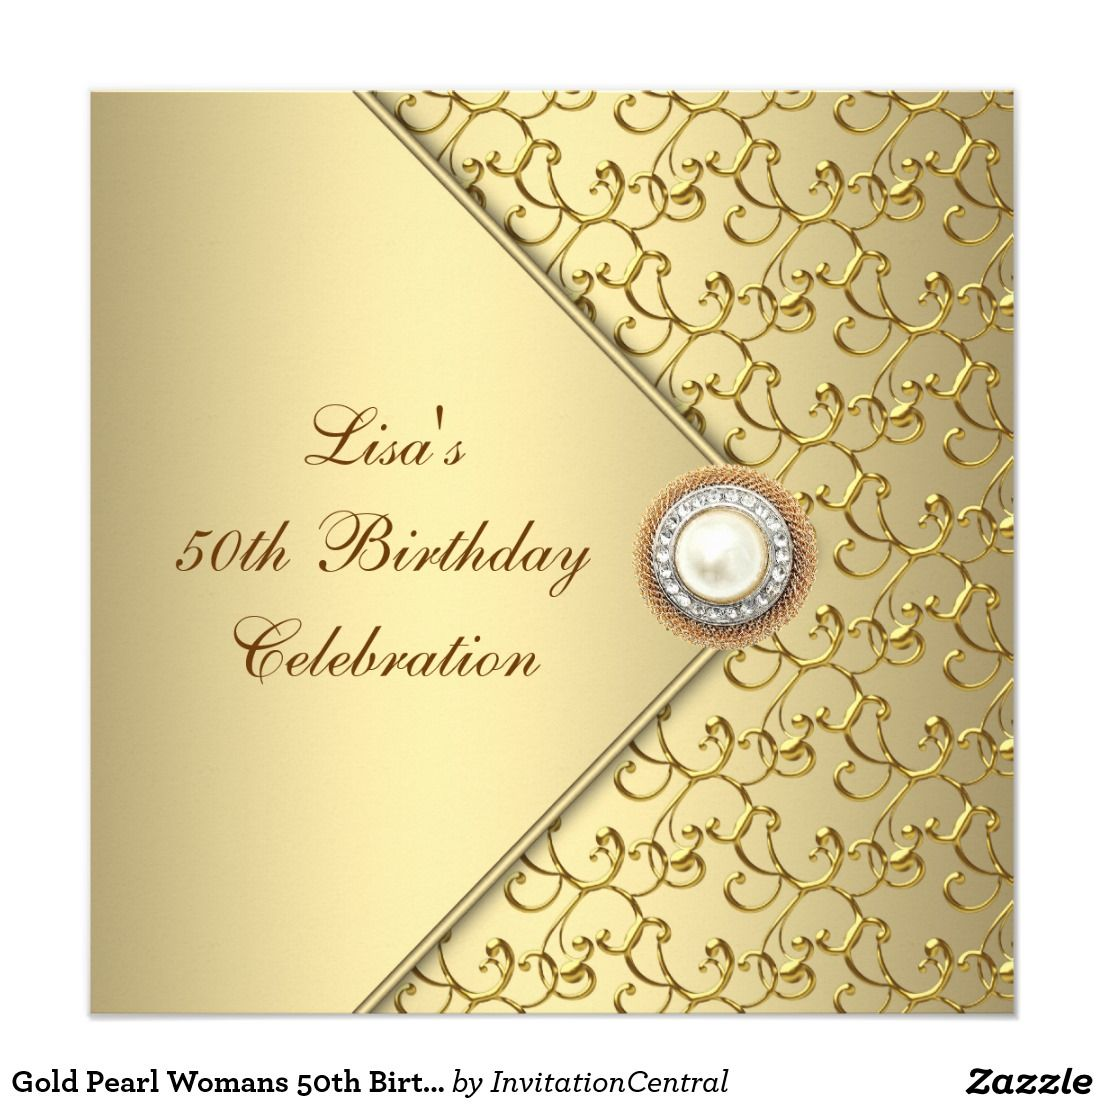 Gold Pearl Womans 50th Birthday Party Invitation